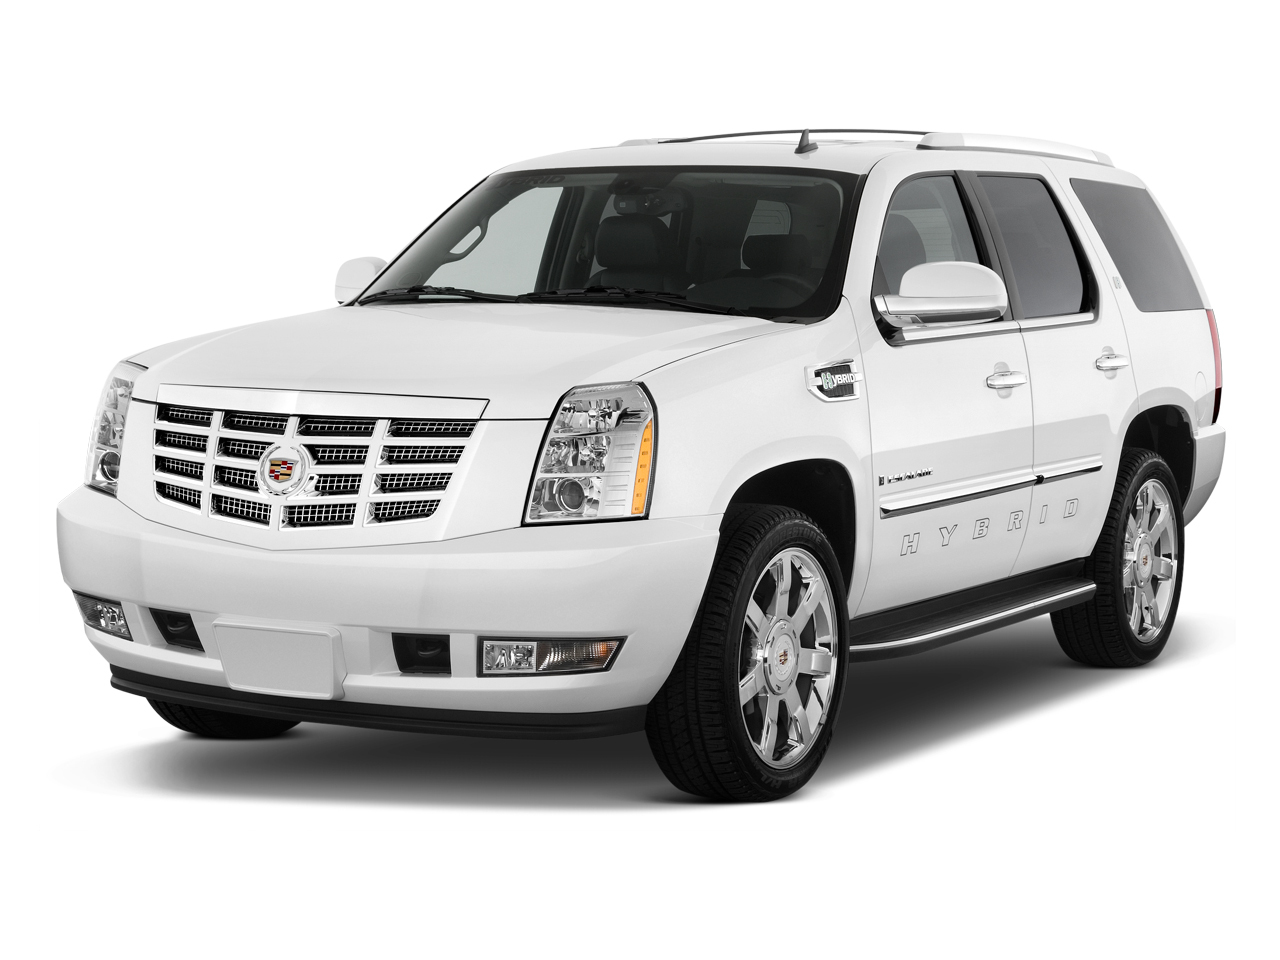 2010 Cadillac Escalade Hybrid Review Ratings Specs